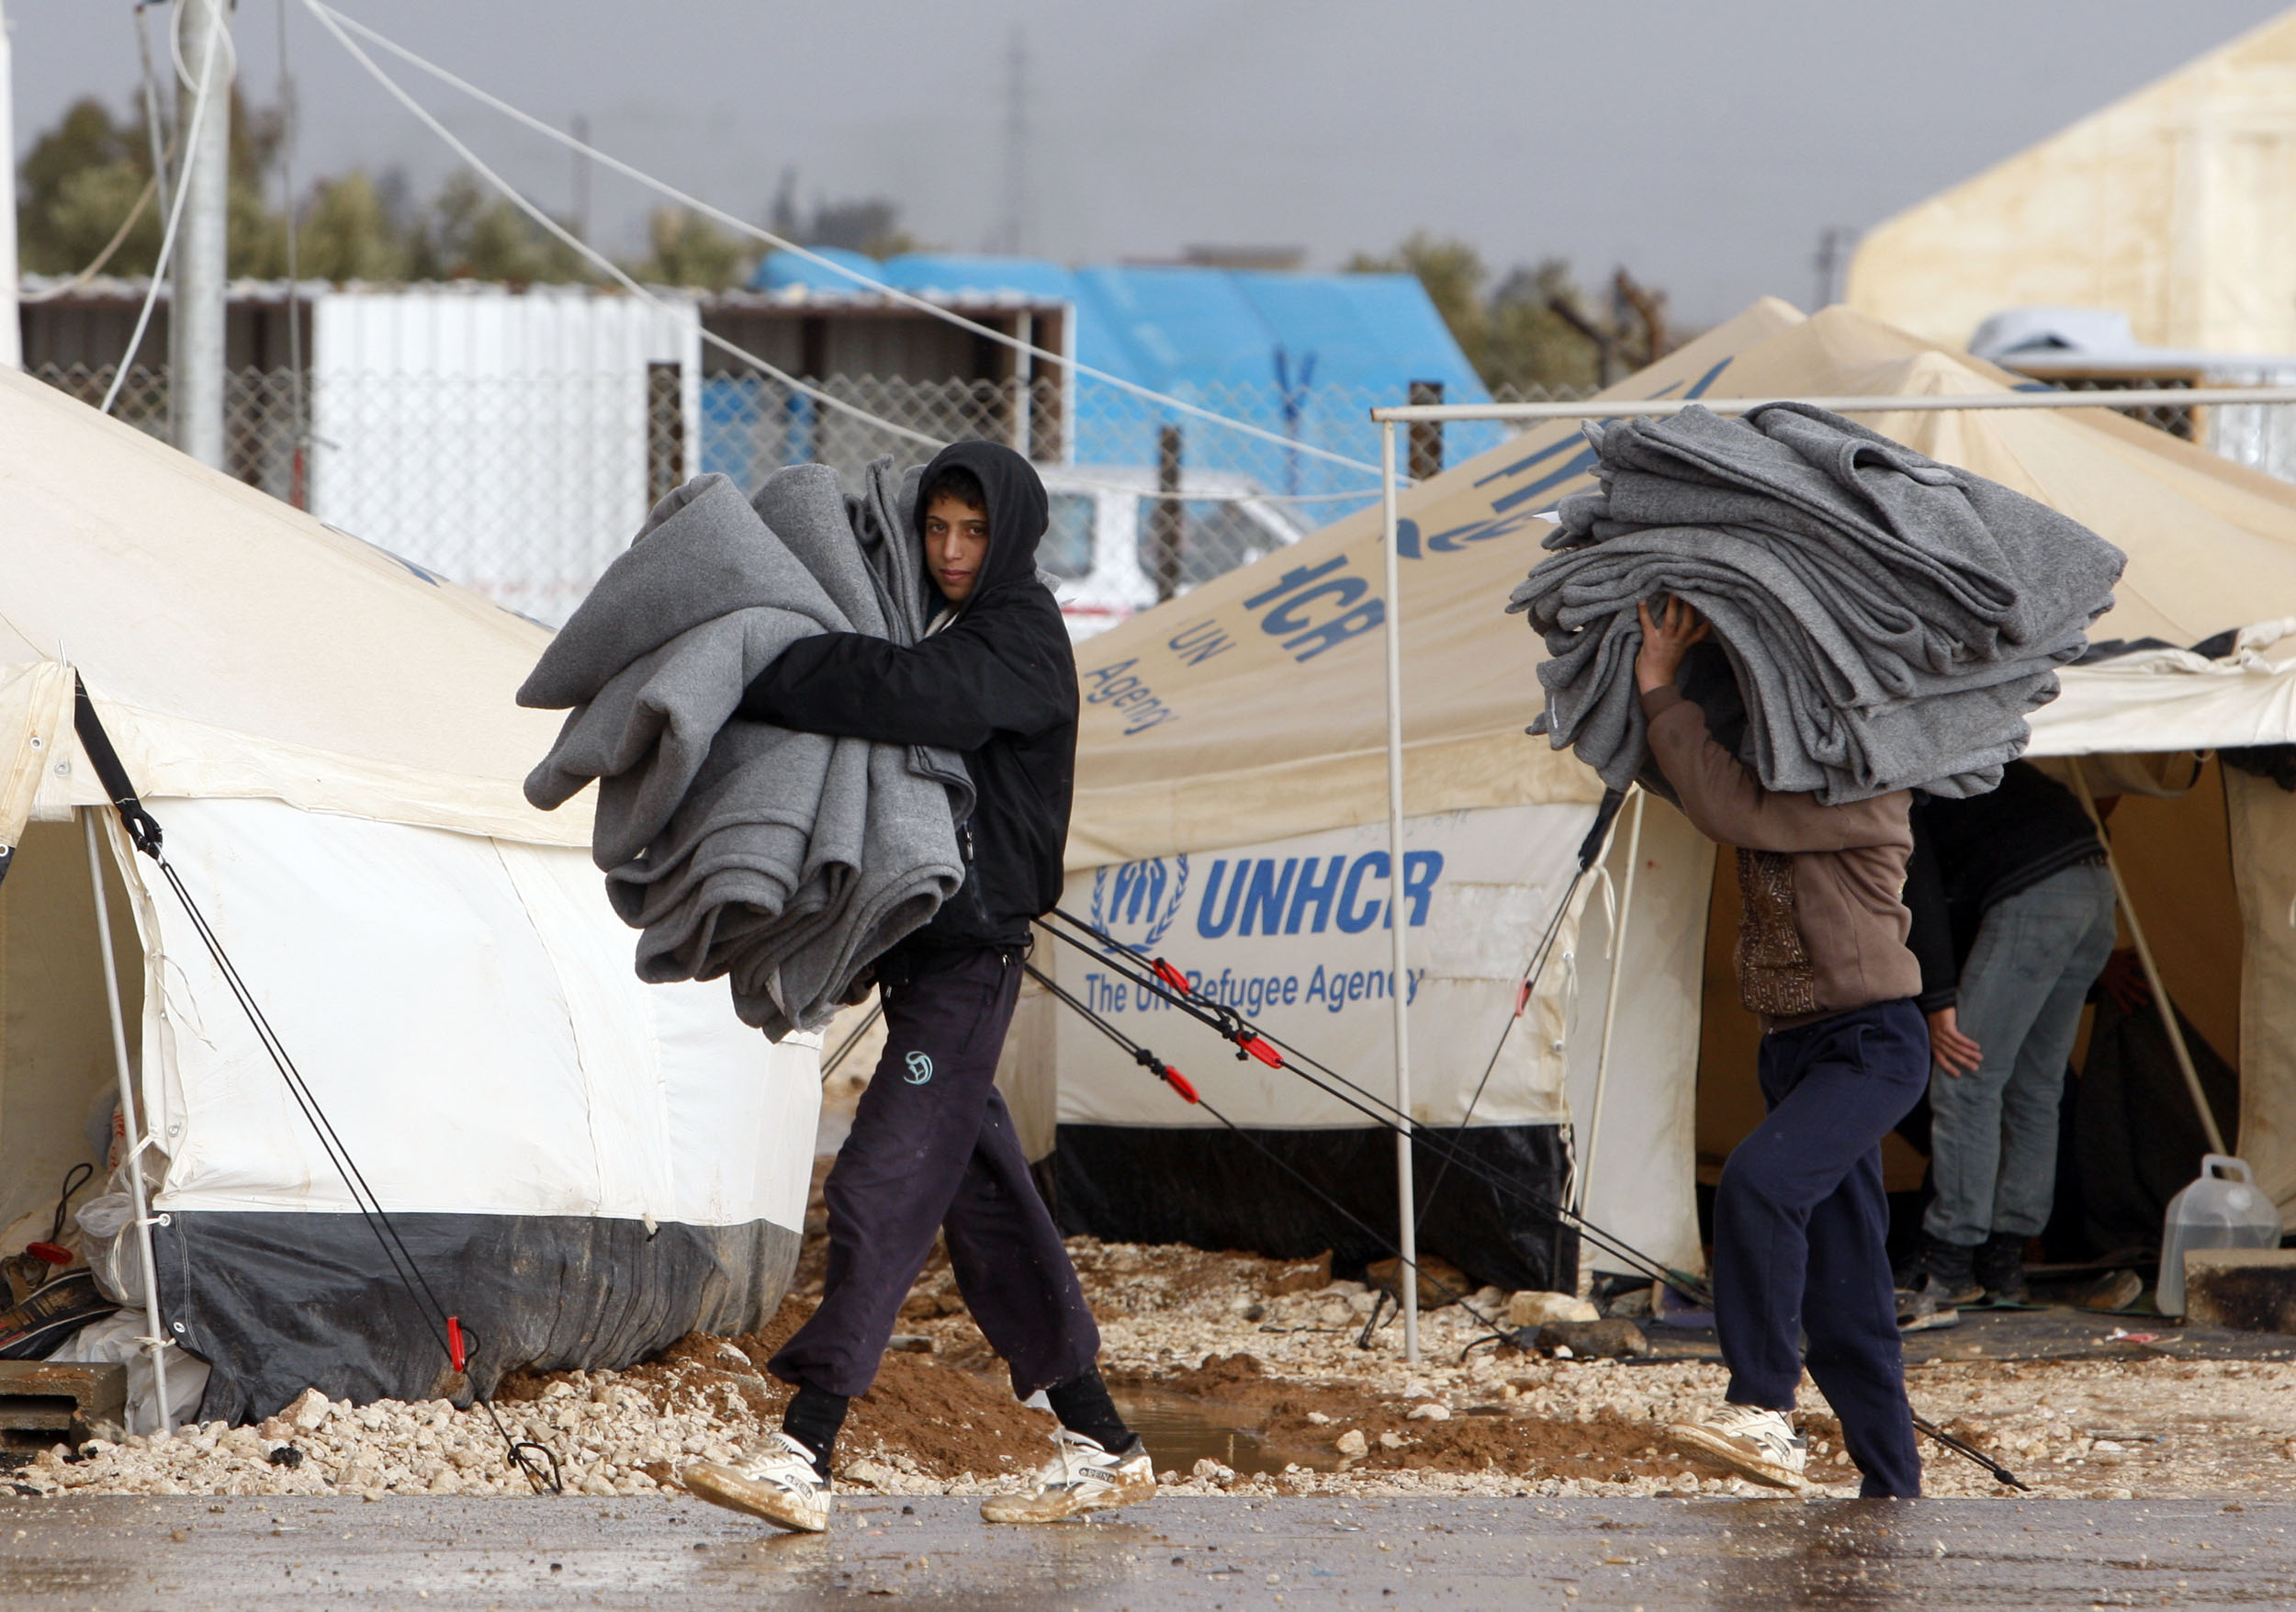 epa03528991 Syrian refugees carry blankets at Zattari Syrian refugee camp, near city of Mafraq, Jordan, 09 January 2013. According to media reports, riots erupted on 08 January 2013 in the Zaatari Syrian refugee camp which was pounded by heavy rains for a second day, damaging 500 tents and submerging much of the site under one meter of mud. EPA/JAMAL NASRALLAH | Blankets